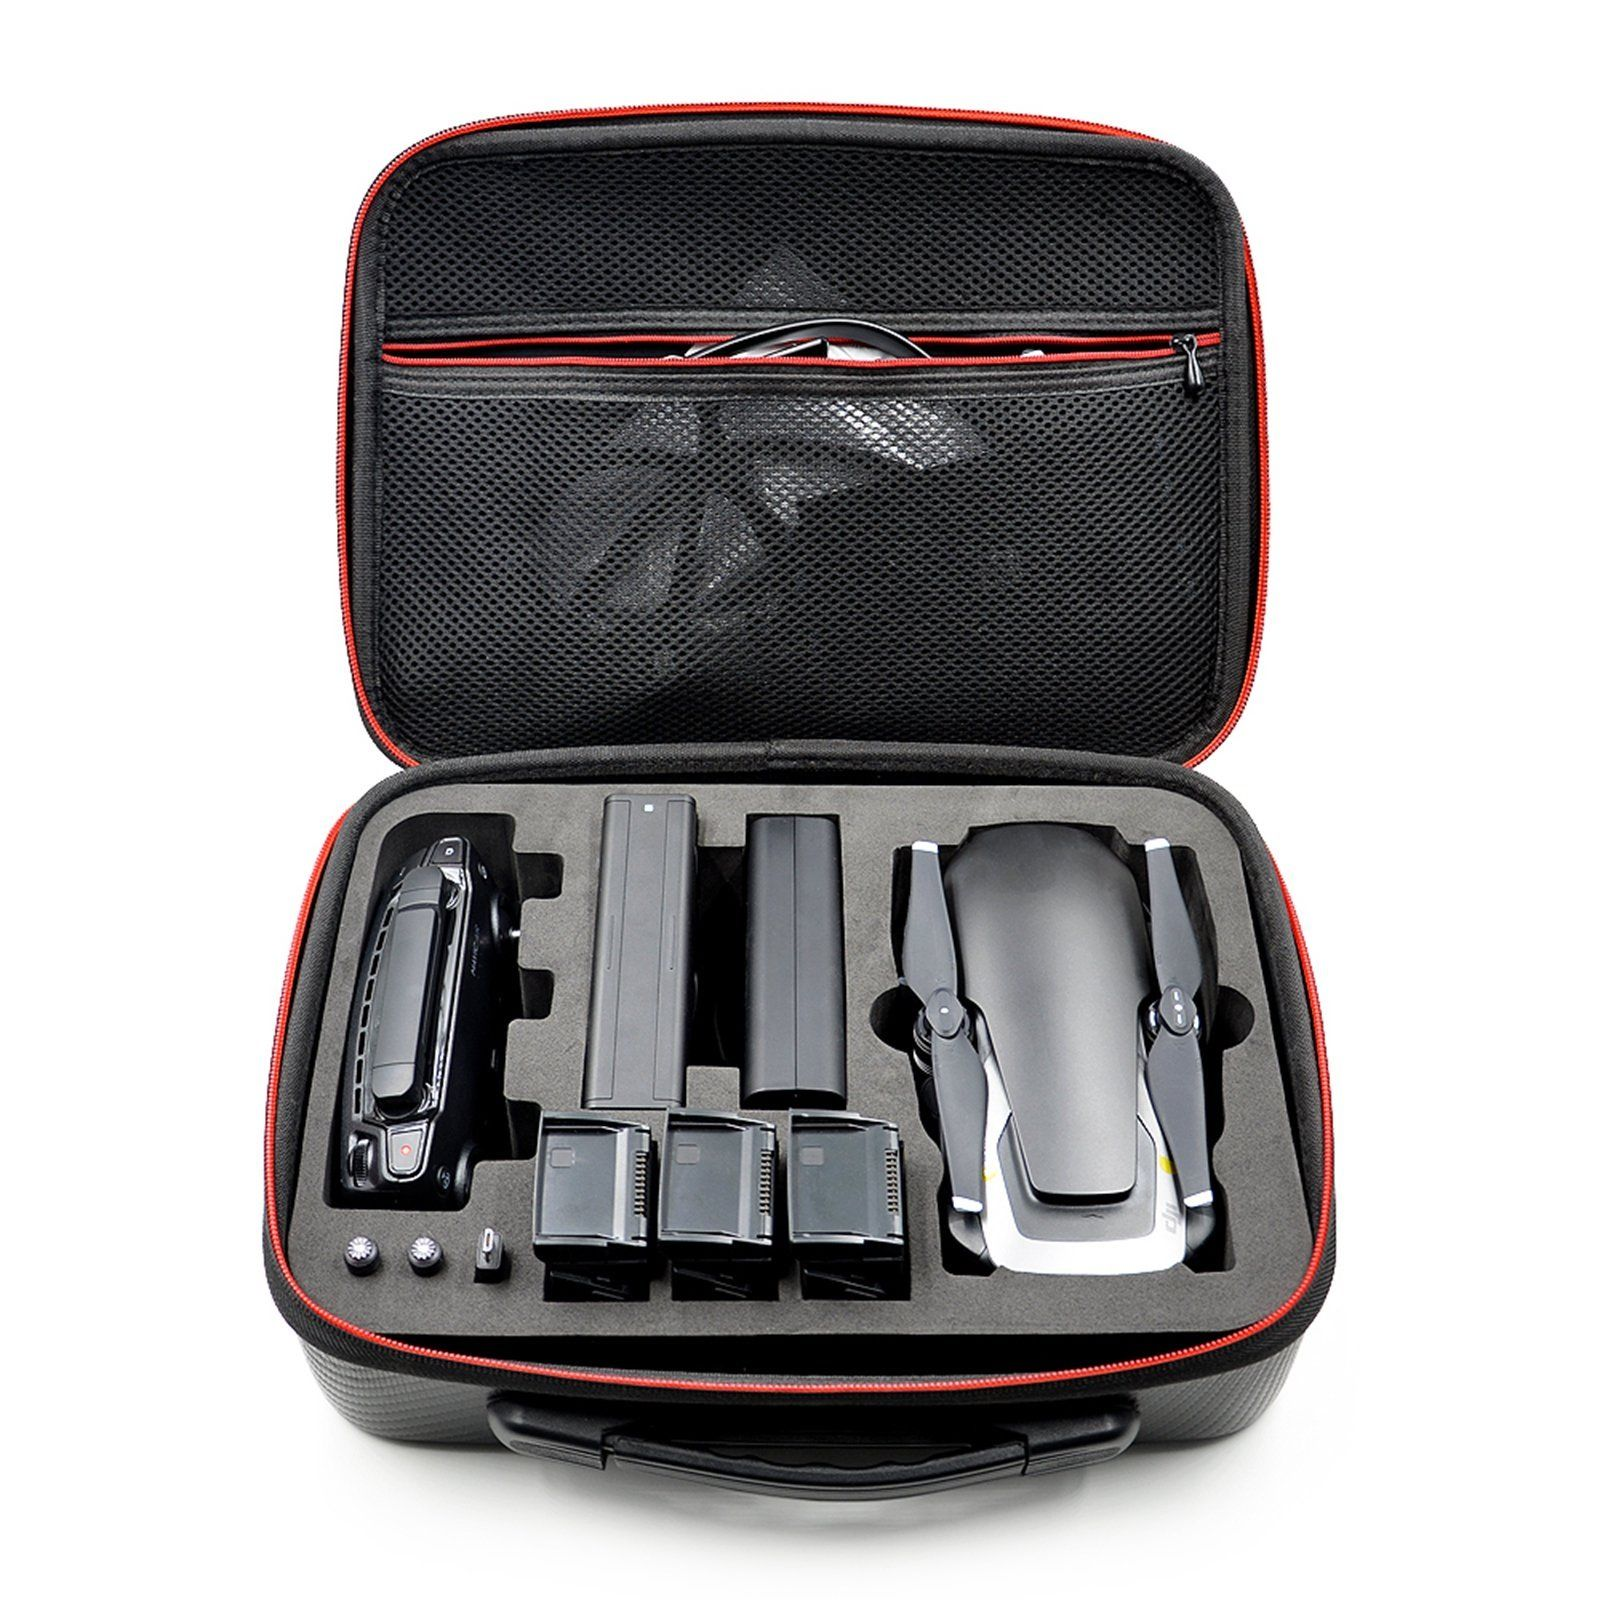 Large Carry Storage Case Bag For Dji Mavic Air Drone Body